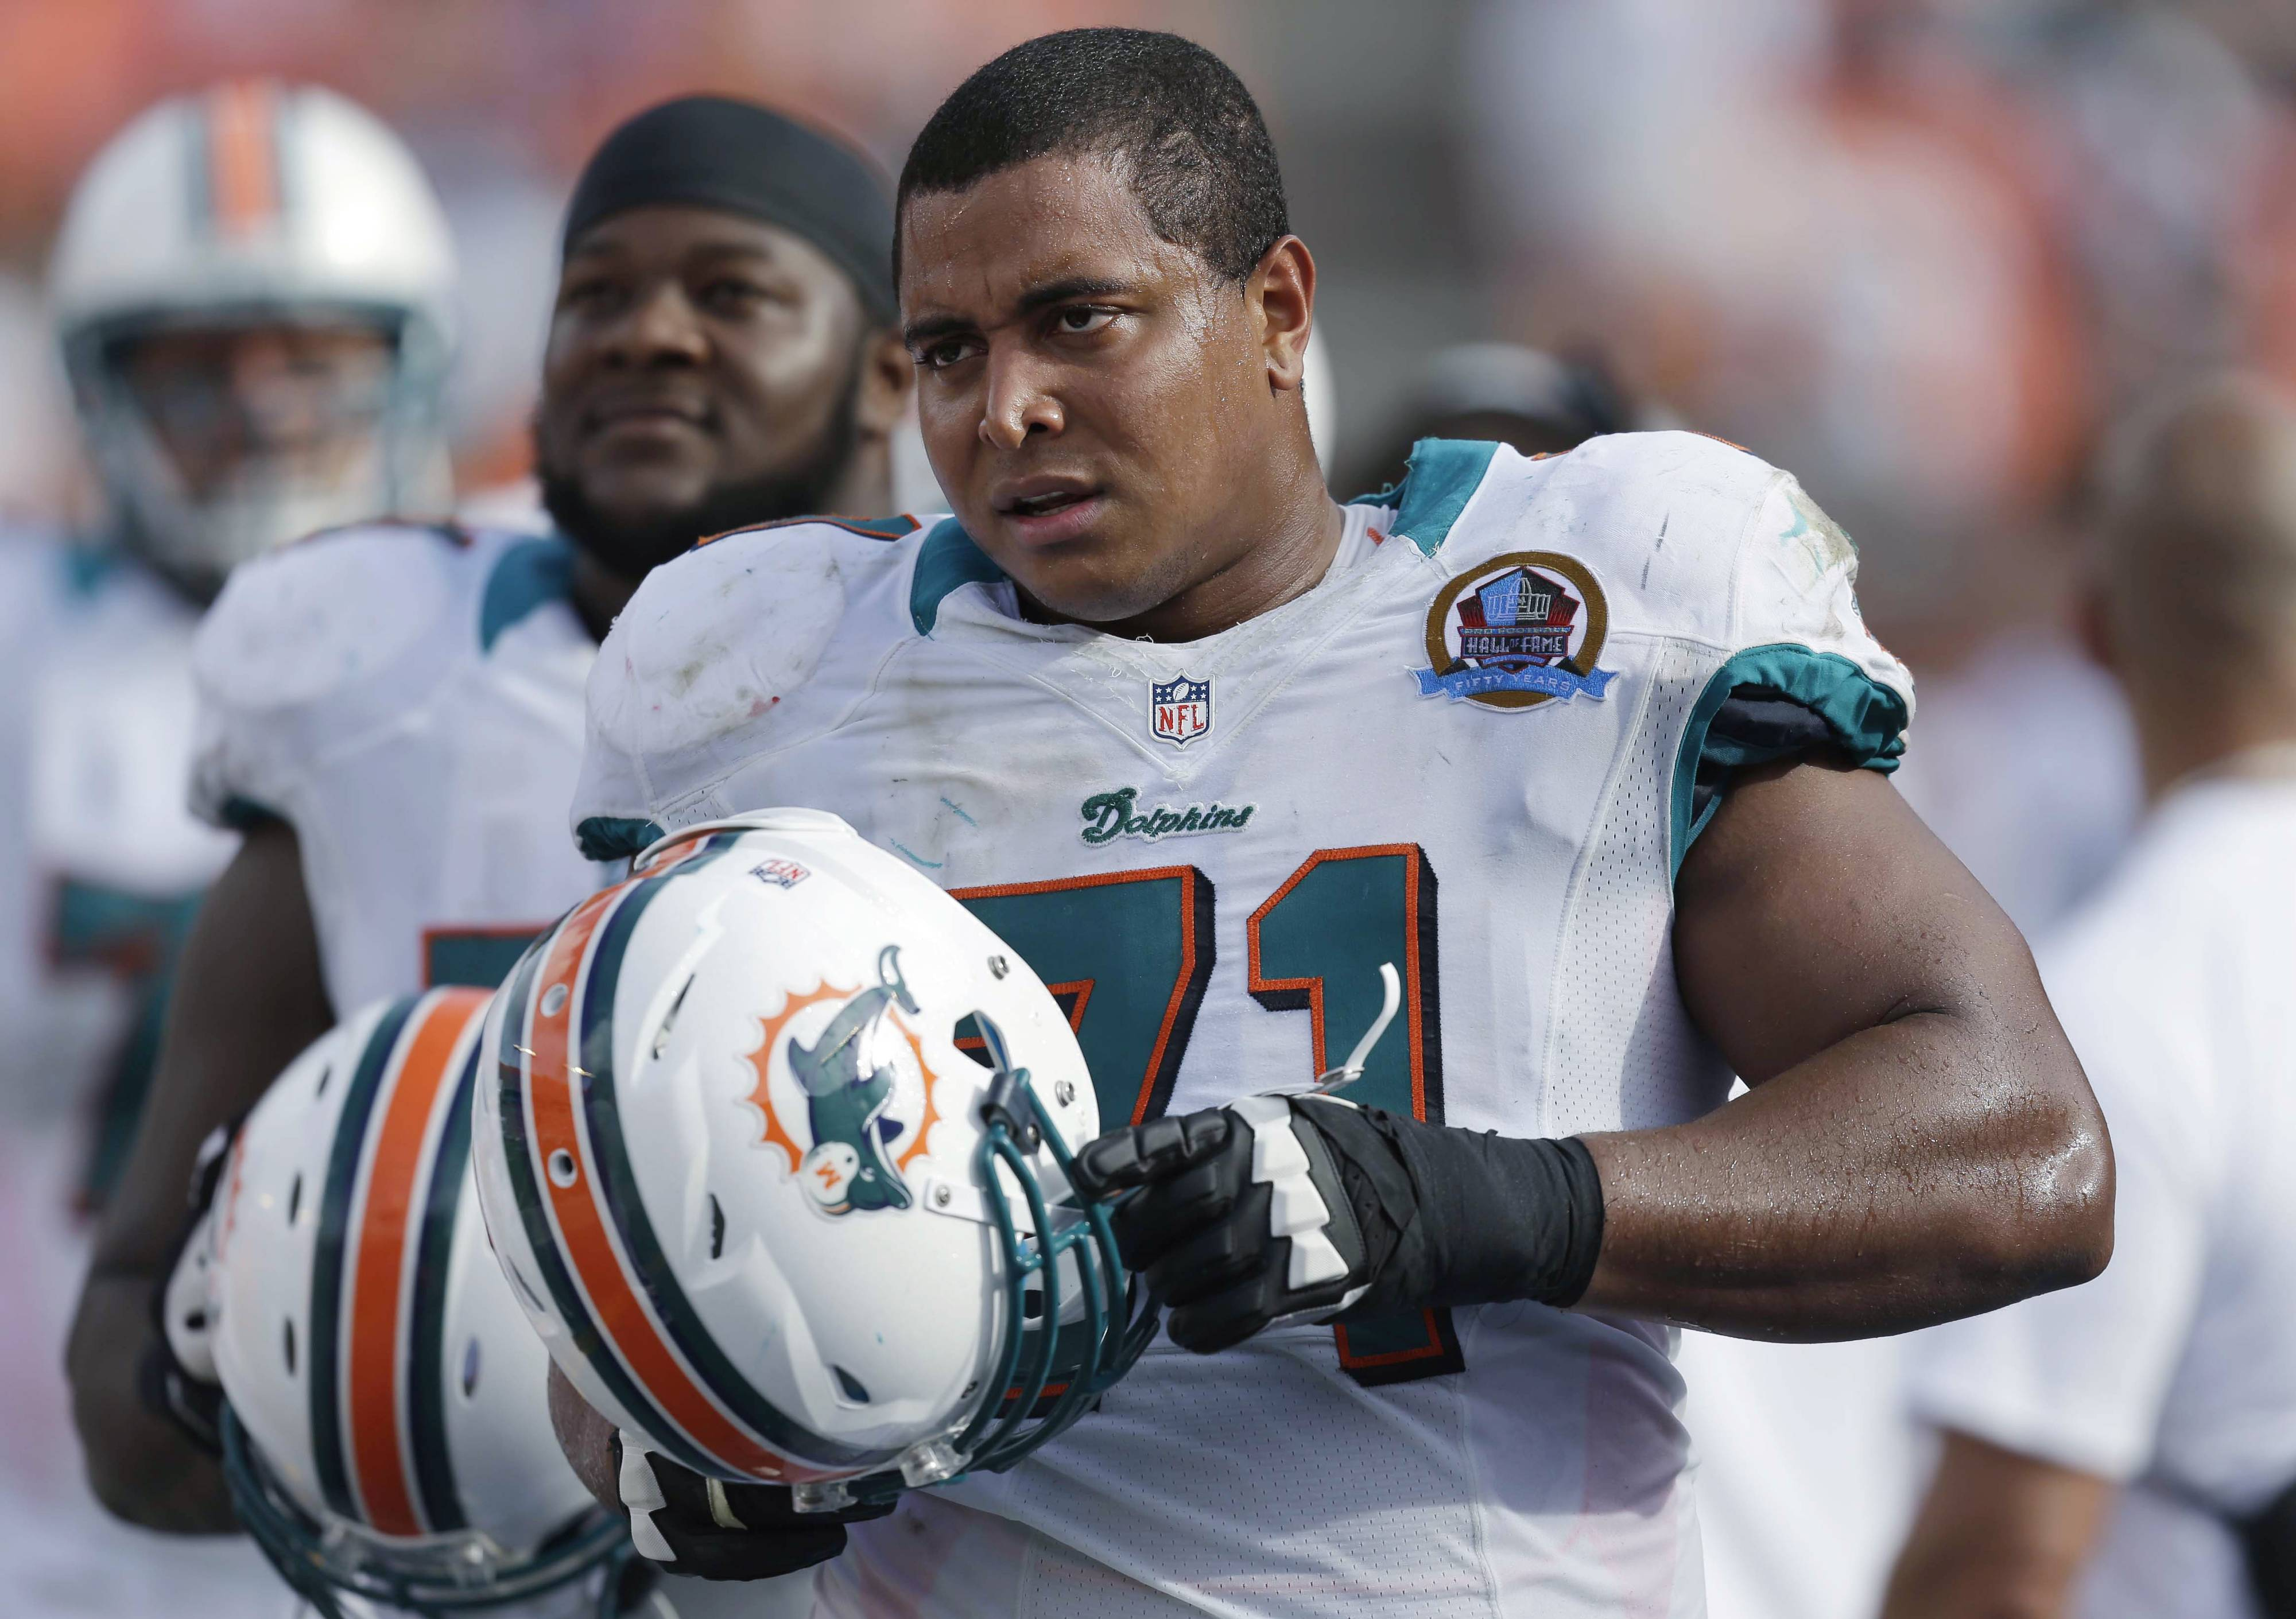 In this Dc. 16, 2012, photo, Miami Dolphins tackle Jonathan Martin (71) stands on the sidelines during the Dolphins' NFL football game against the Jacksonville Jaguars in Miami. Martin, the offensive tackle at the center of the Dolphins' bullying scandal, has been traded to the San Francisco 49ers. The Dolphins announced the deal Tuesday night, March 11, 2014, on the first day of NFL free agency. Martin's move cross country brings him back to the Bay Area to be reunited with his former Stanford coach, Jim Harbaugh.